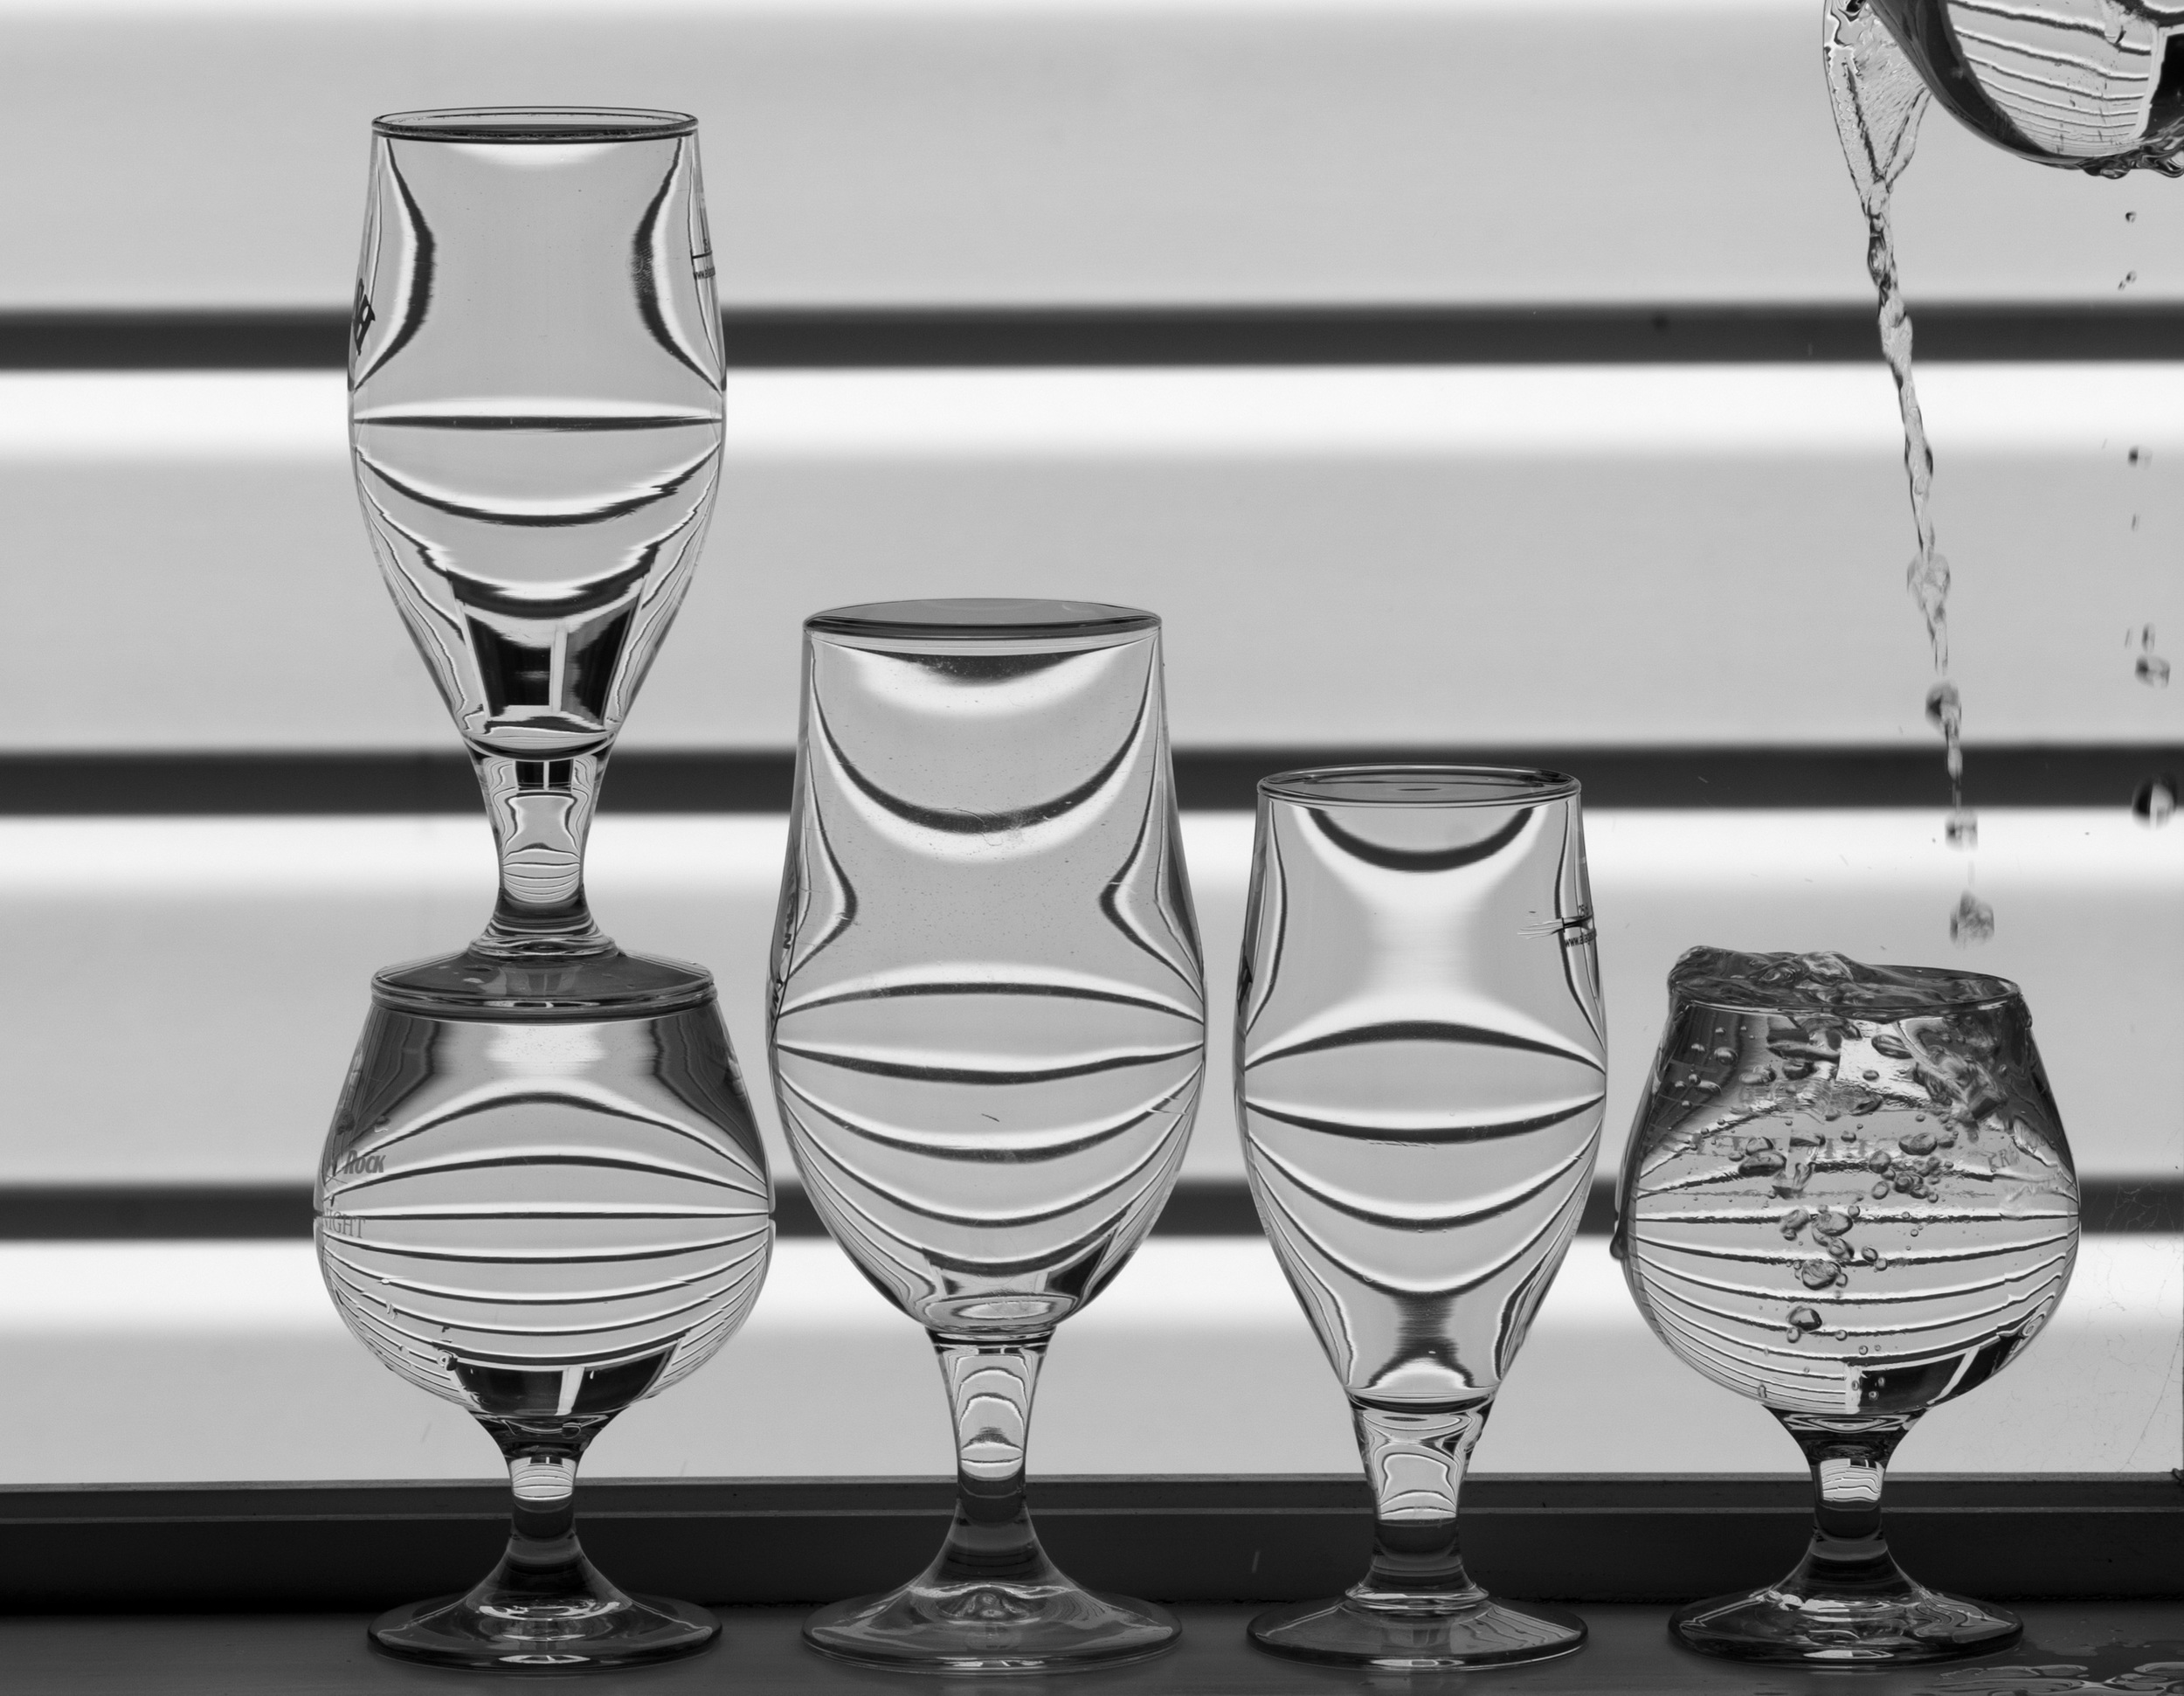 Refraction Study II, 2012 Archival pigment print 14 x 18 inches